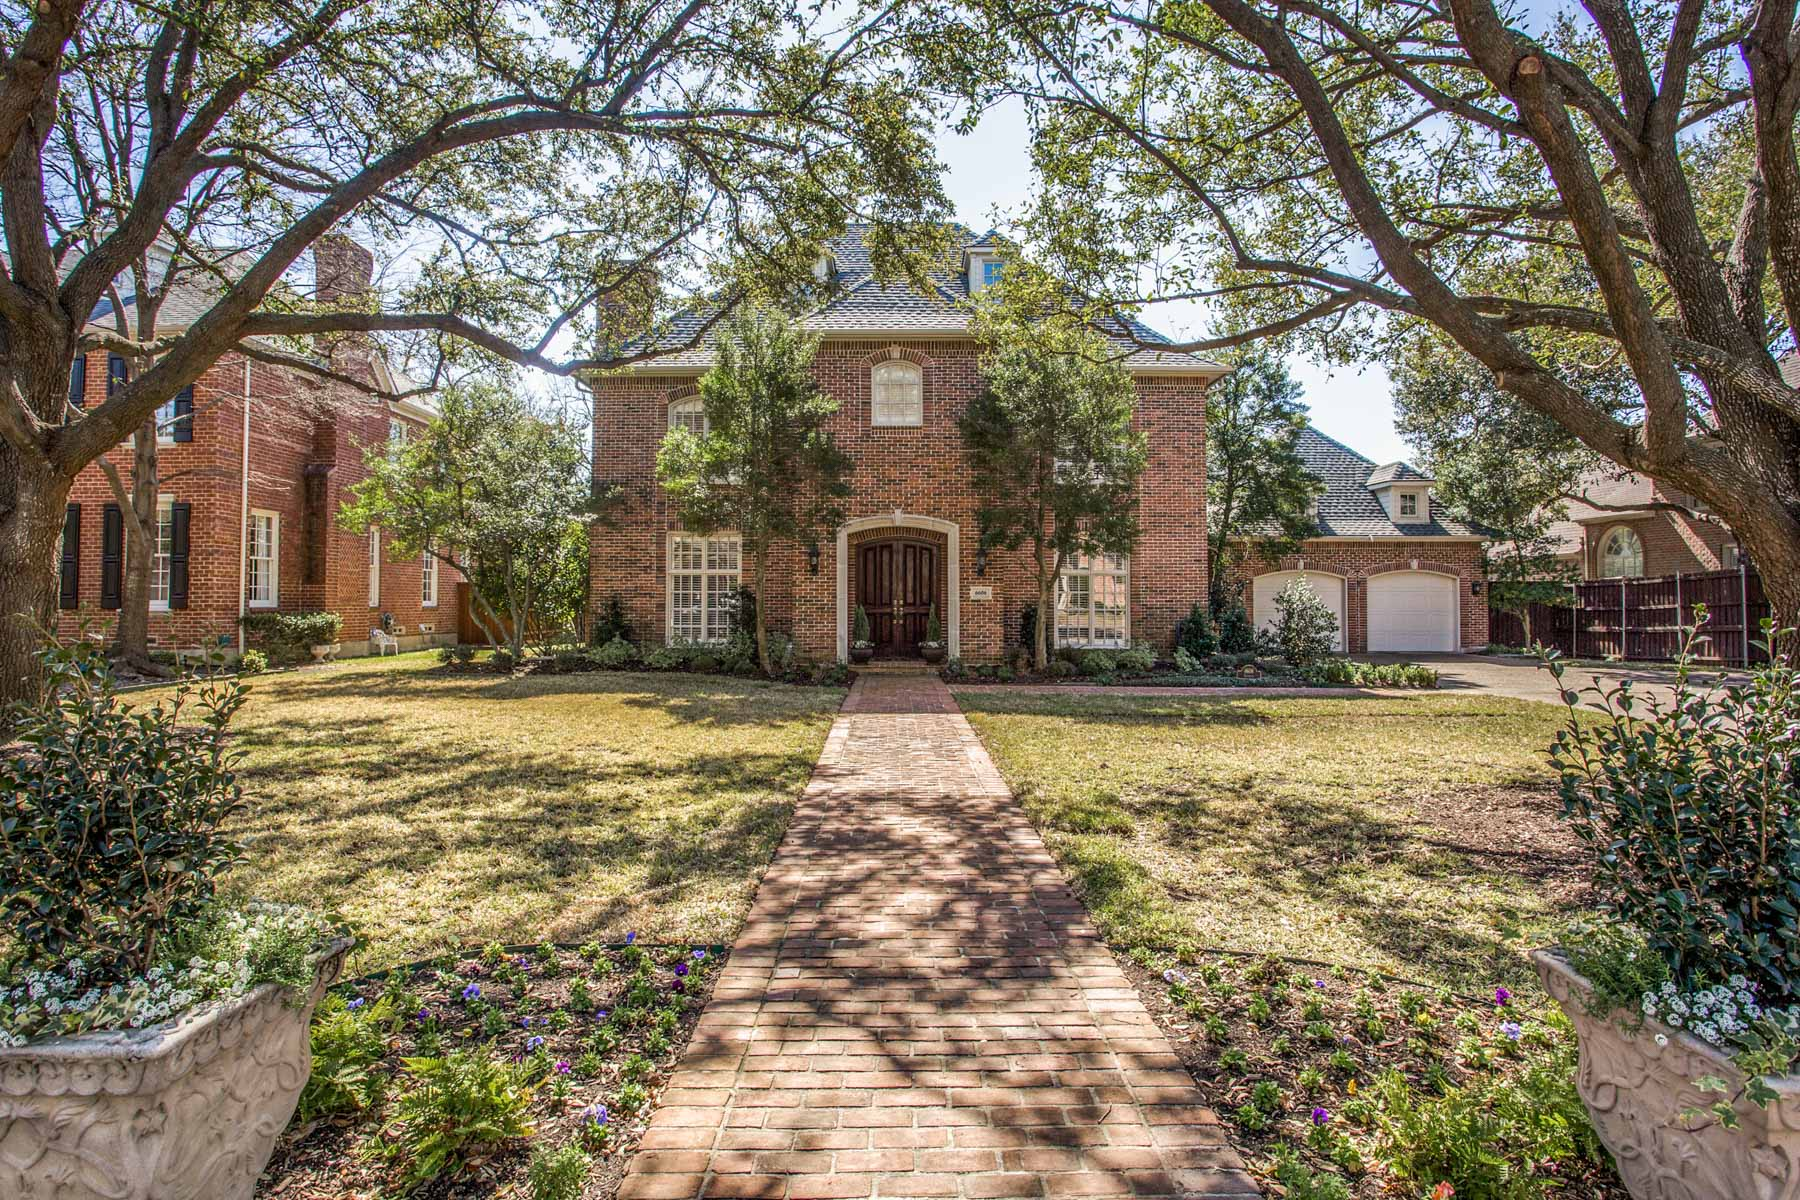 Single Family Home for Sale at Charming Preston Hollow Traditional 6606 Glendora Ave Dallas, Texas, 75230 United States